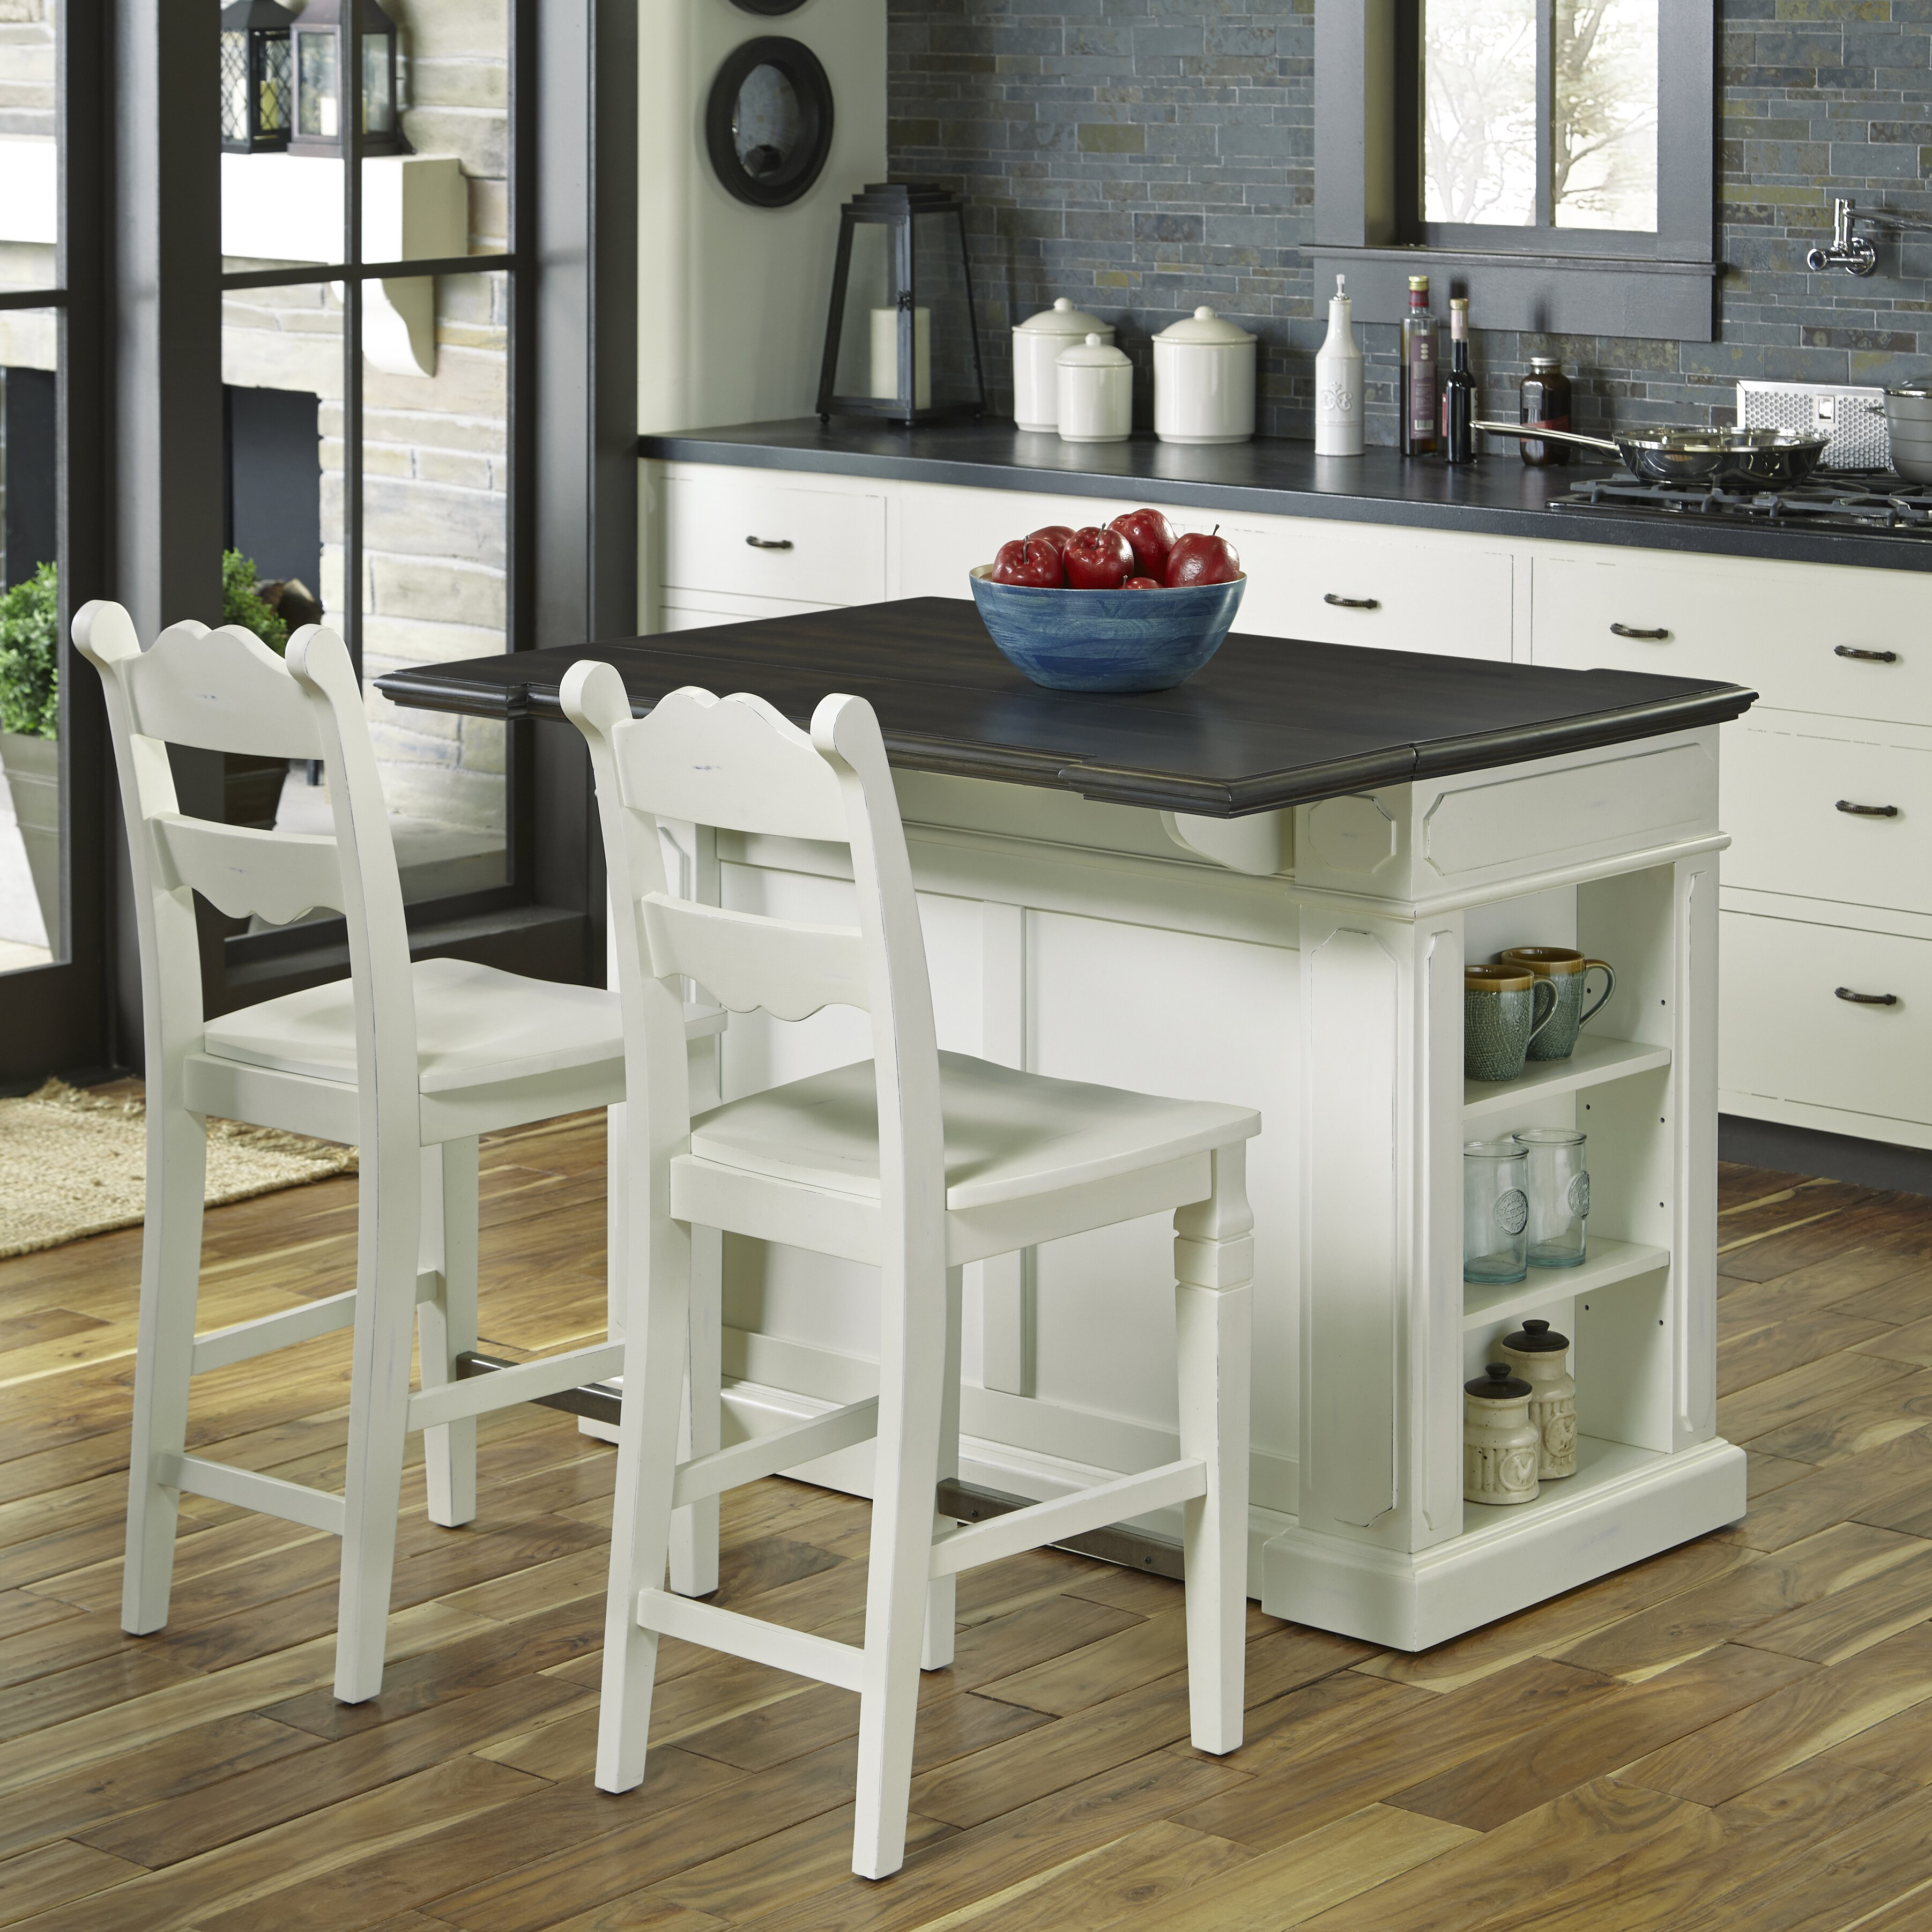 home styles fiesta kitchen island set. Black Bedroom Furniture Sets. Home Design Ideas